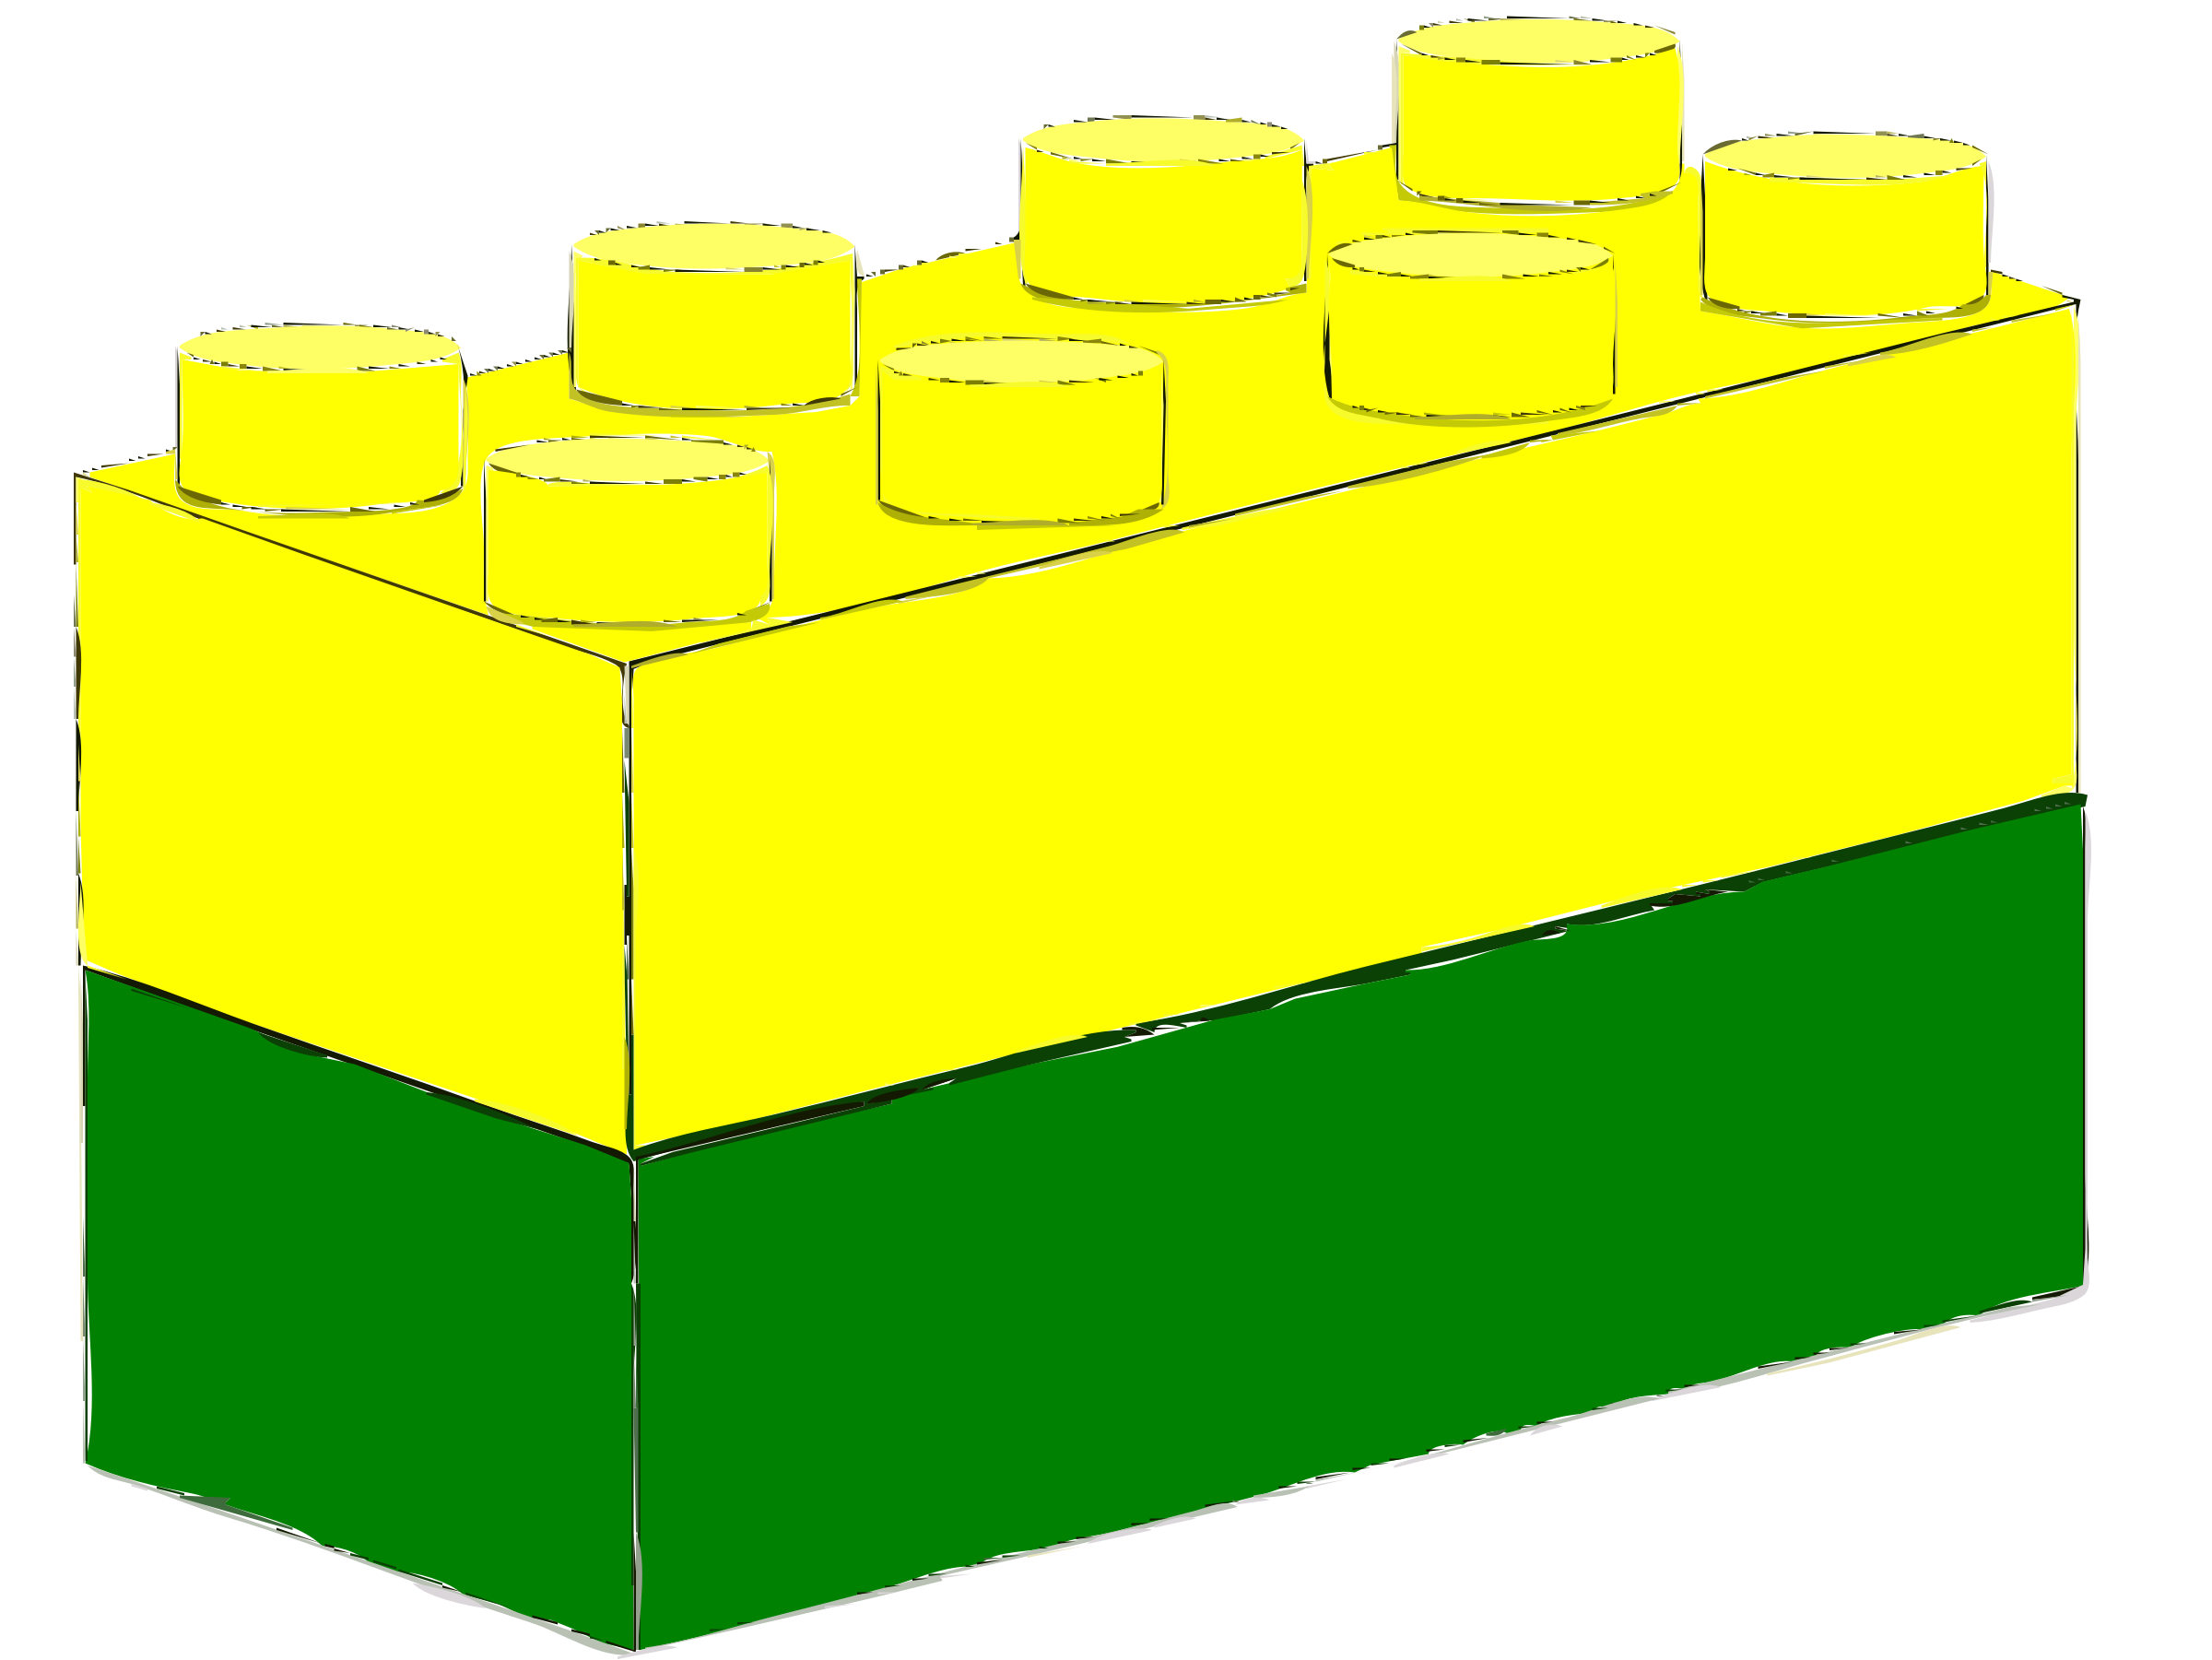 Bricks Yellow Green by mcgrath.timothy